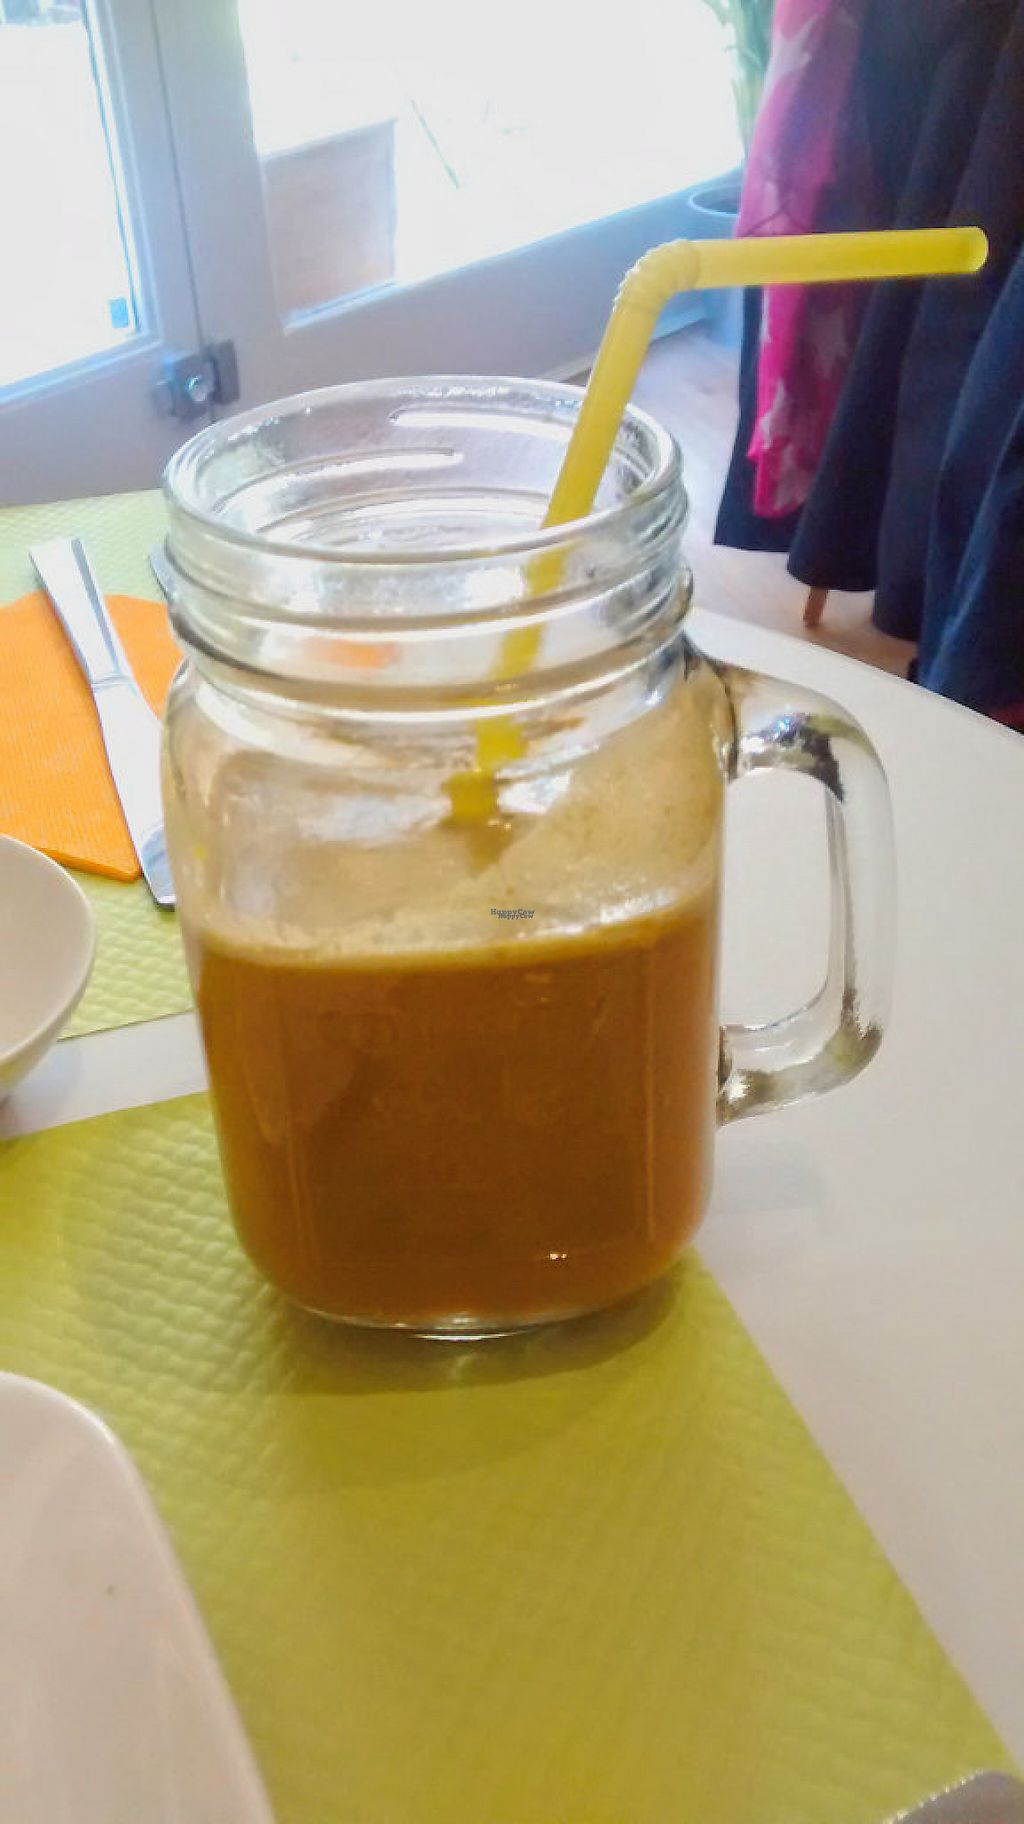 """Photo of L'Essentiel Saveurs Crues  by <a href=""""/members/profile/JonJon"""">JonJon</a> <br/>Juice with tomatoe, celery, carrot, ginger <br/> December 10, 2016  - <a href='/contact/abuse/image/83809/198989'>Report</a>"""